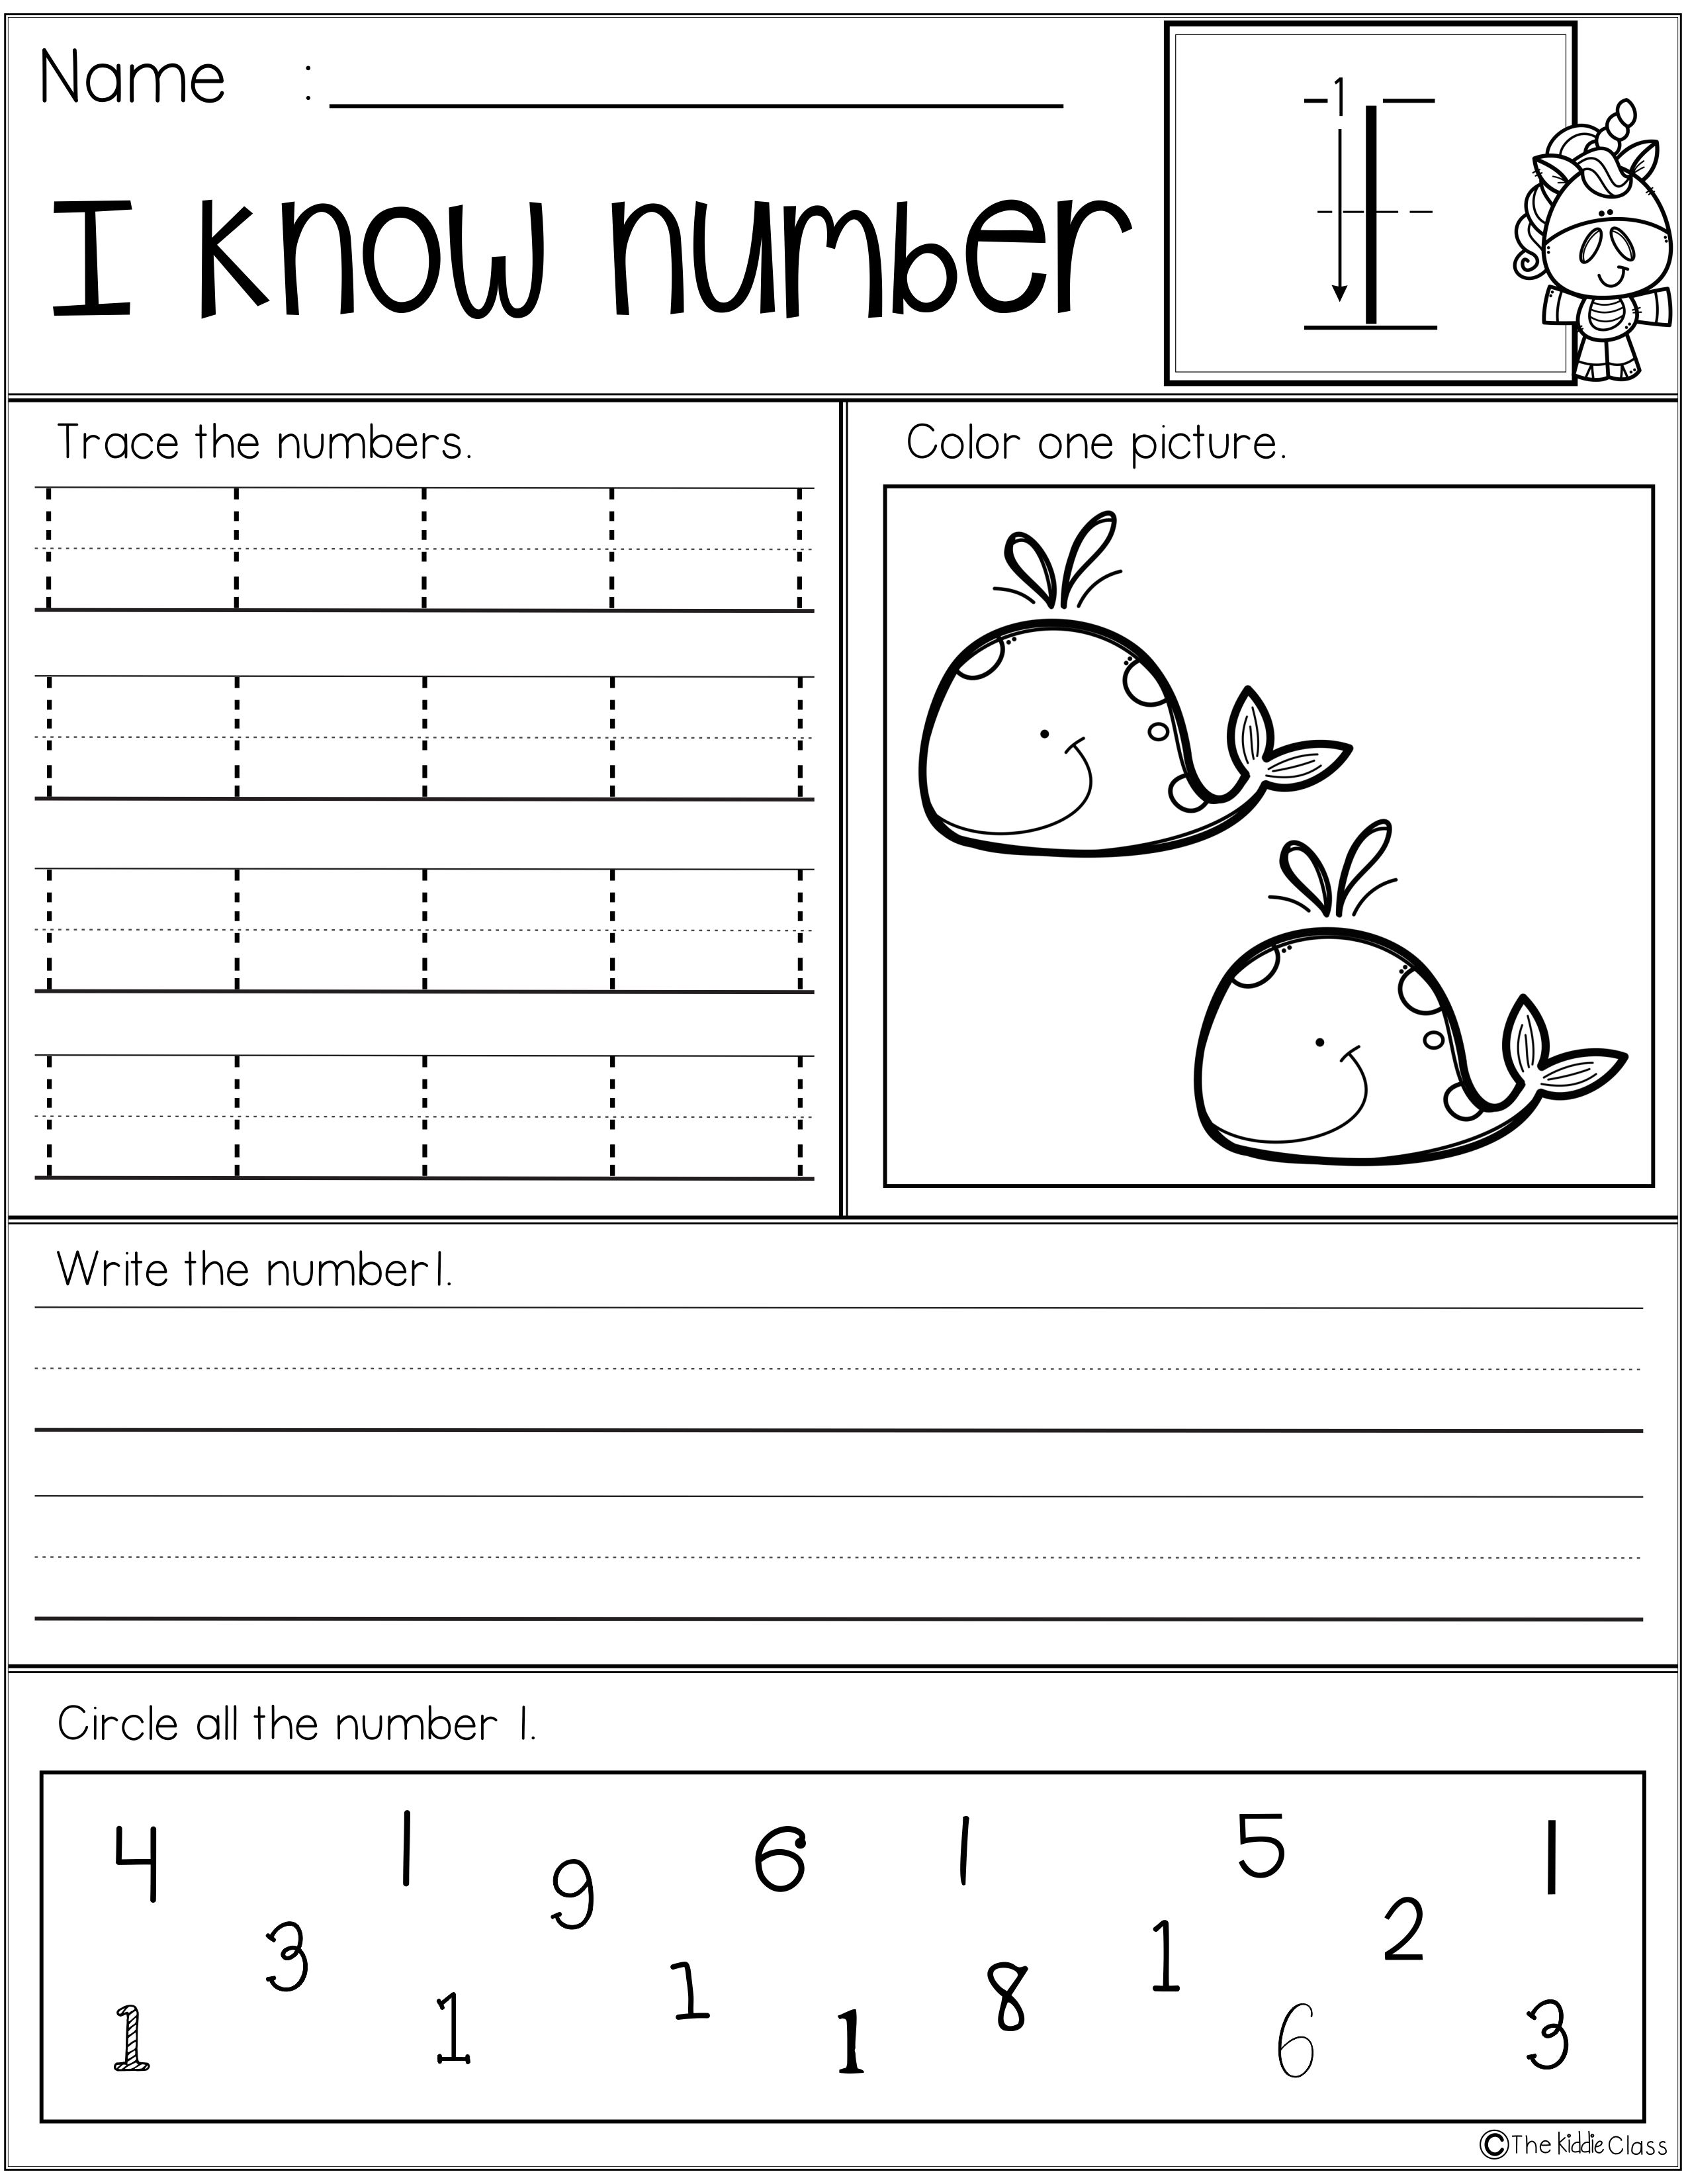 small resolution of https://cute766.info/numbers-worksheets-learning-numbers-for-preschool-kindergarten-and-grade-1-k5-learning/